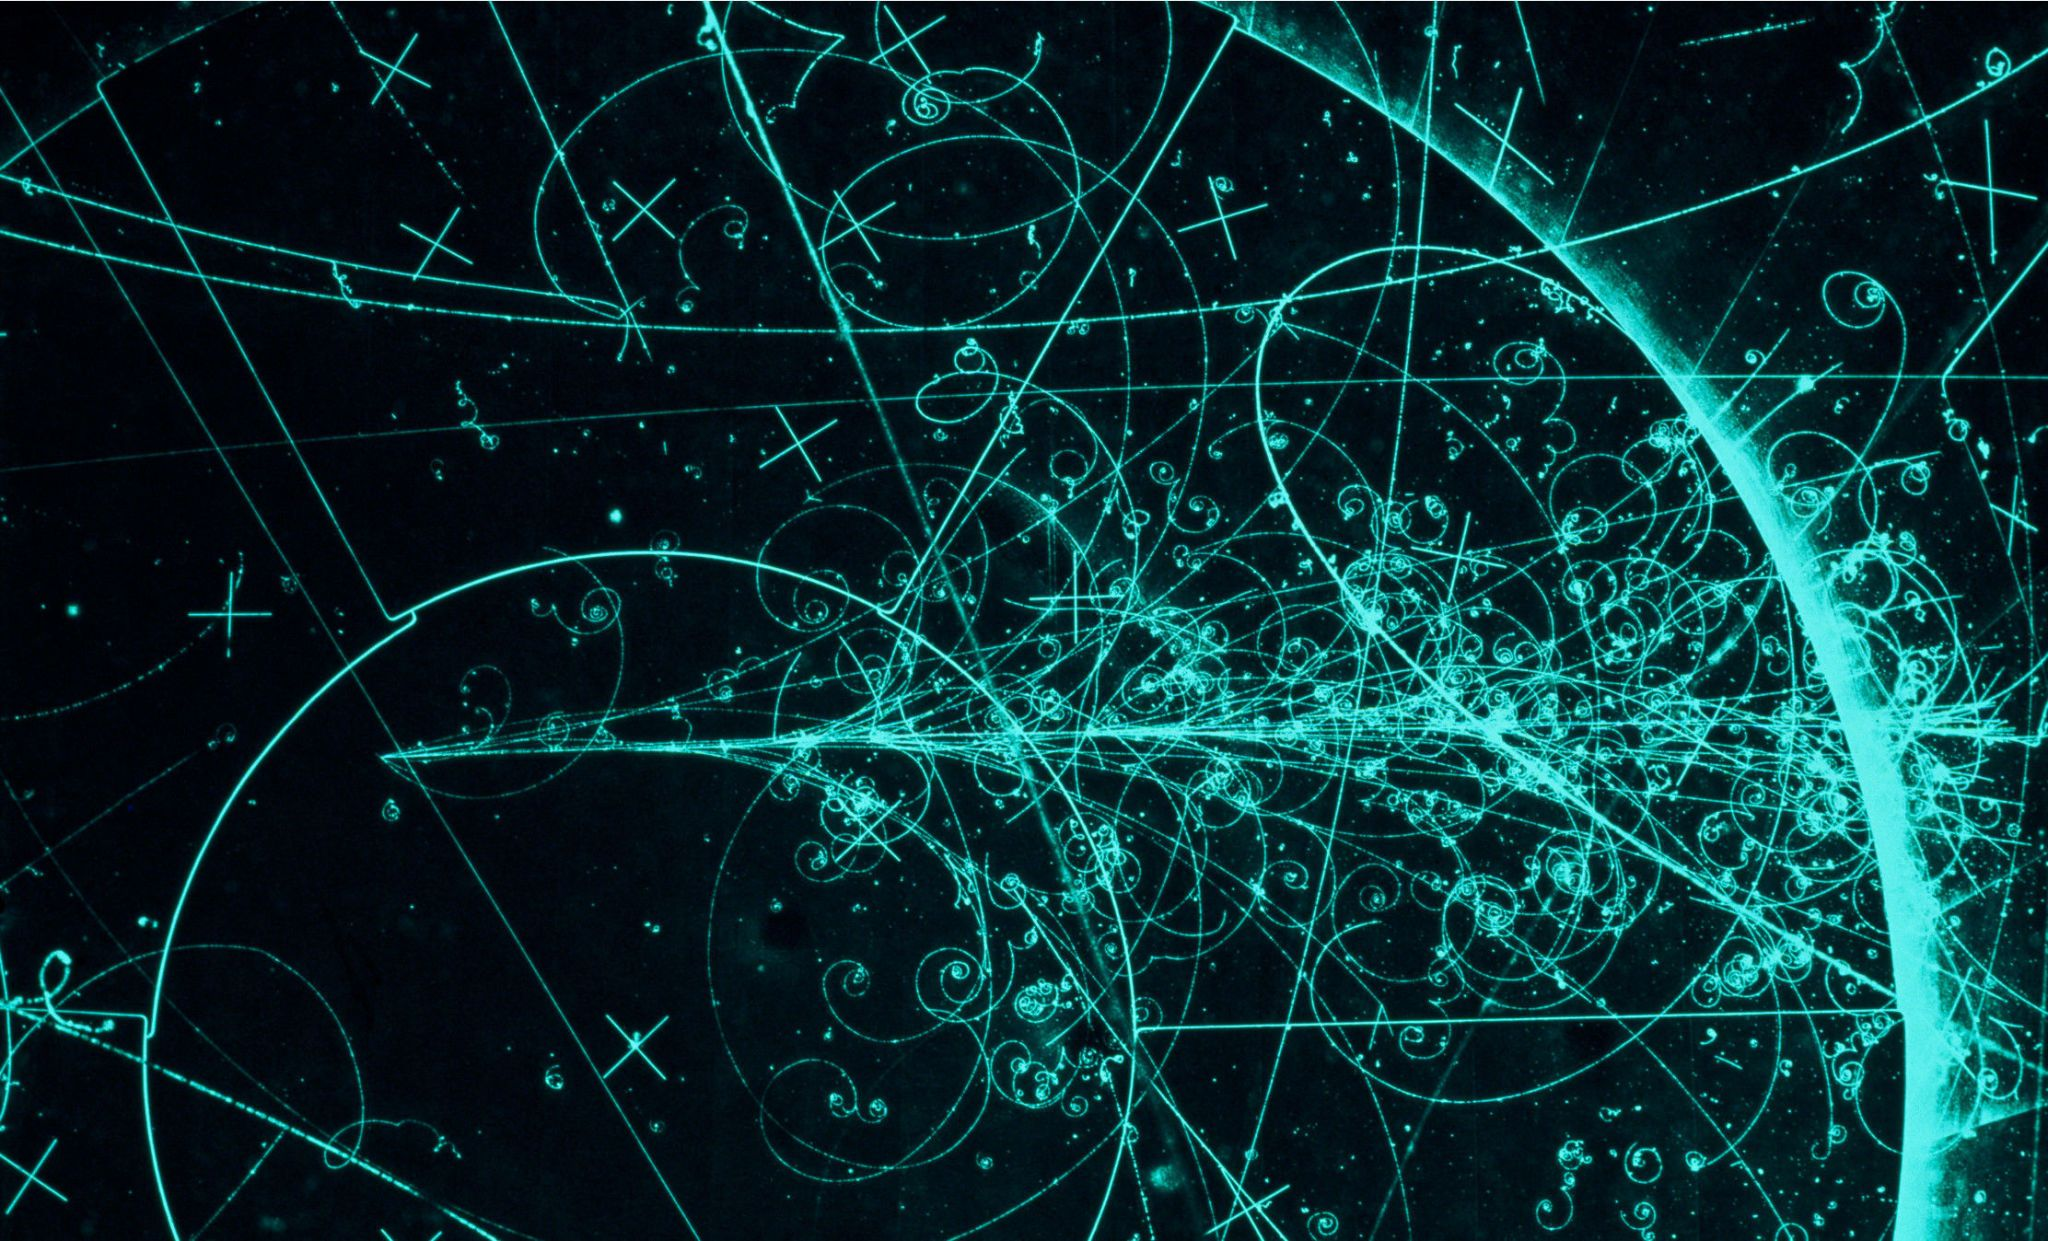 New Experiment Hints at Why the Universe Is Made of Something Rather Than Nothing